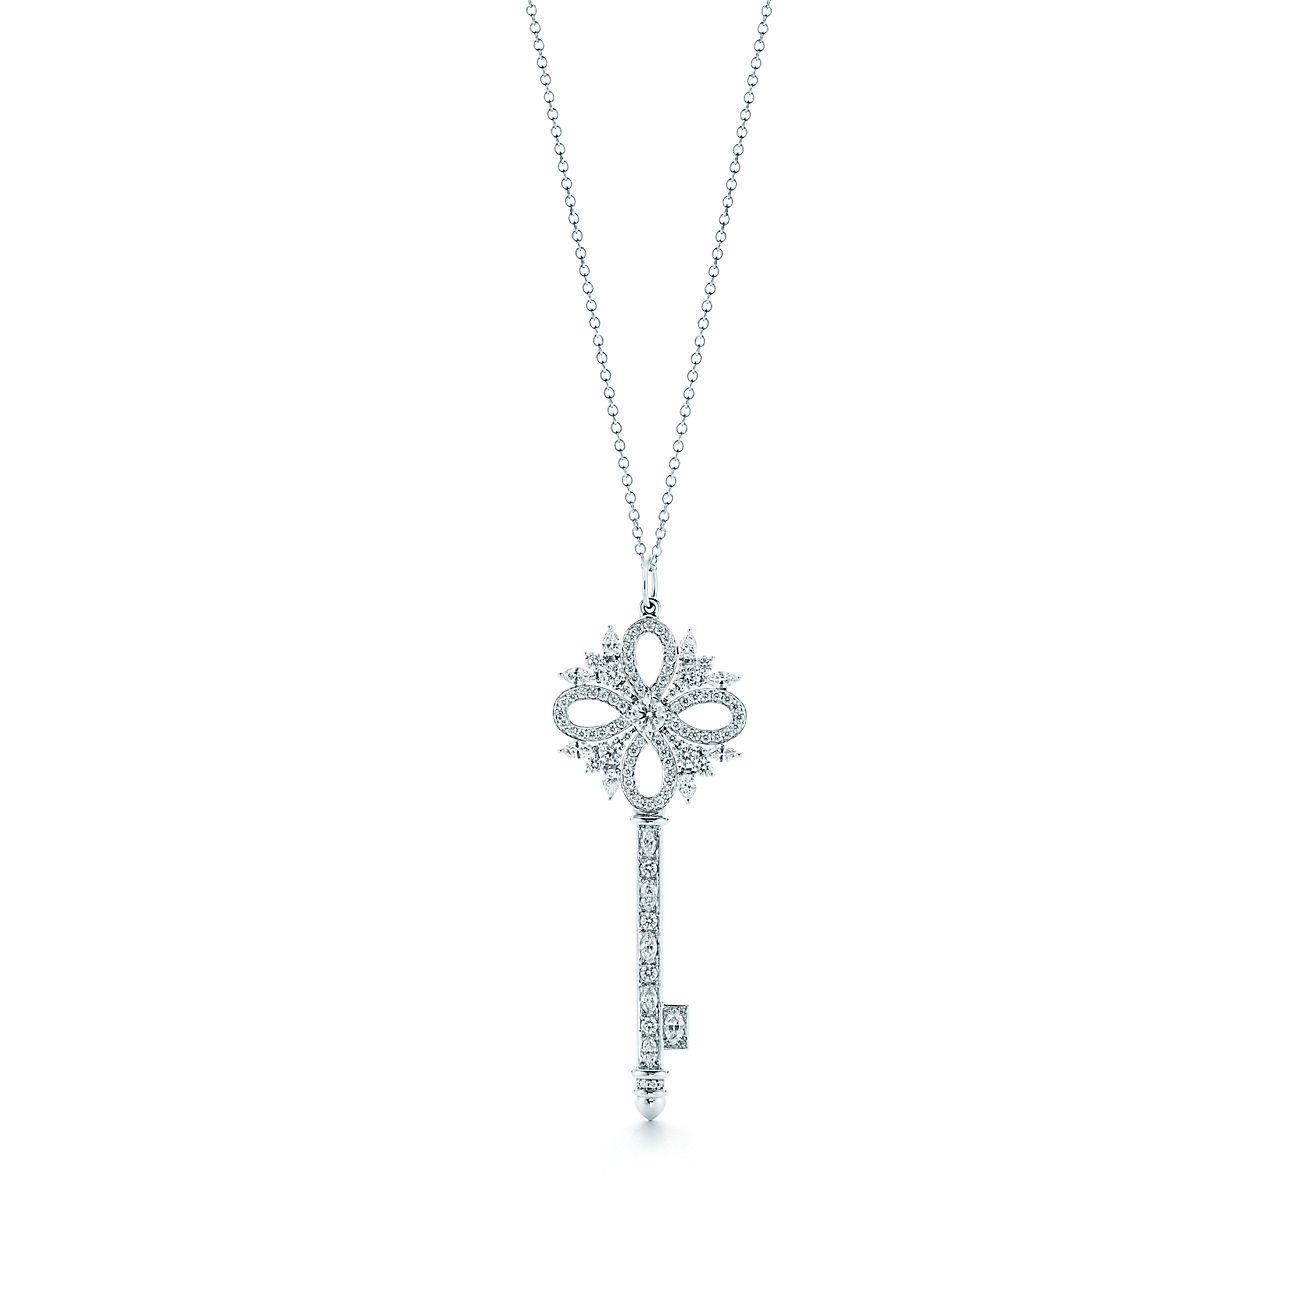 Tiffany Keys Tiffany Victoria Key Pendant In Platinum With Diamonds Medium Tiffany Co